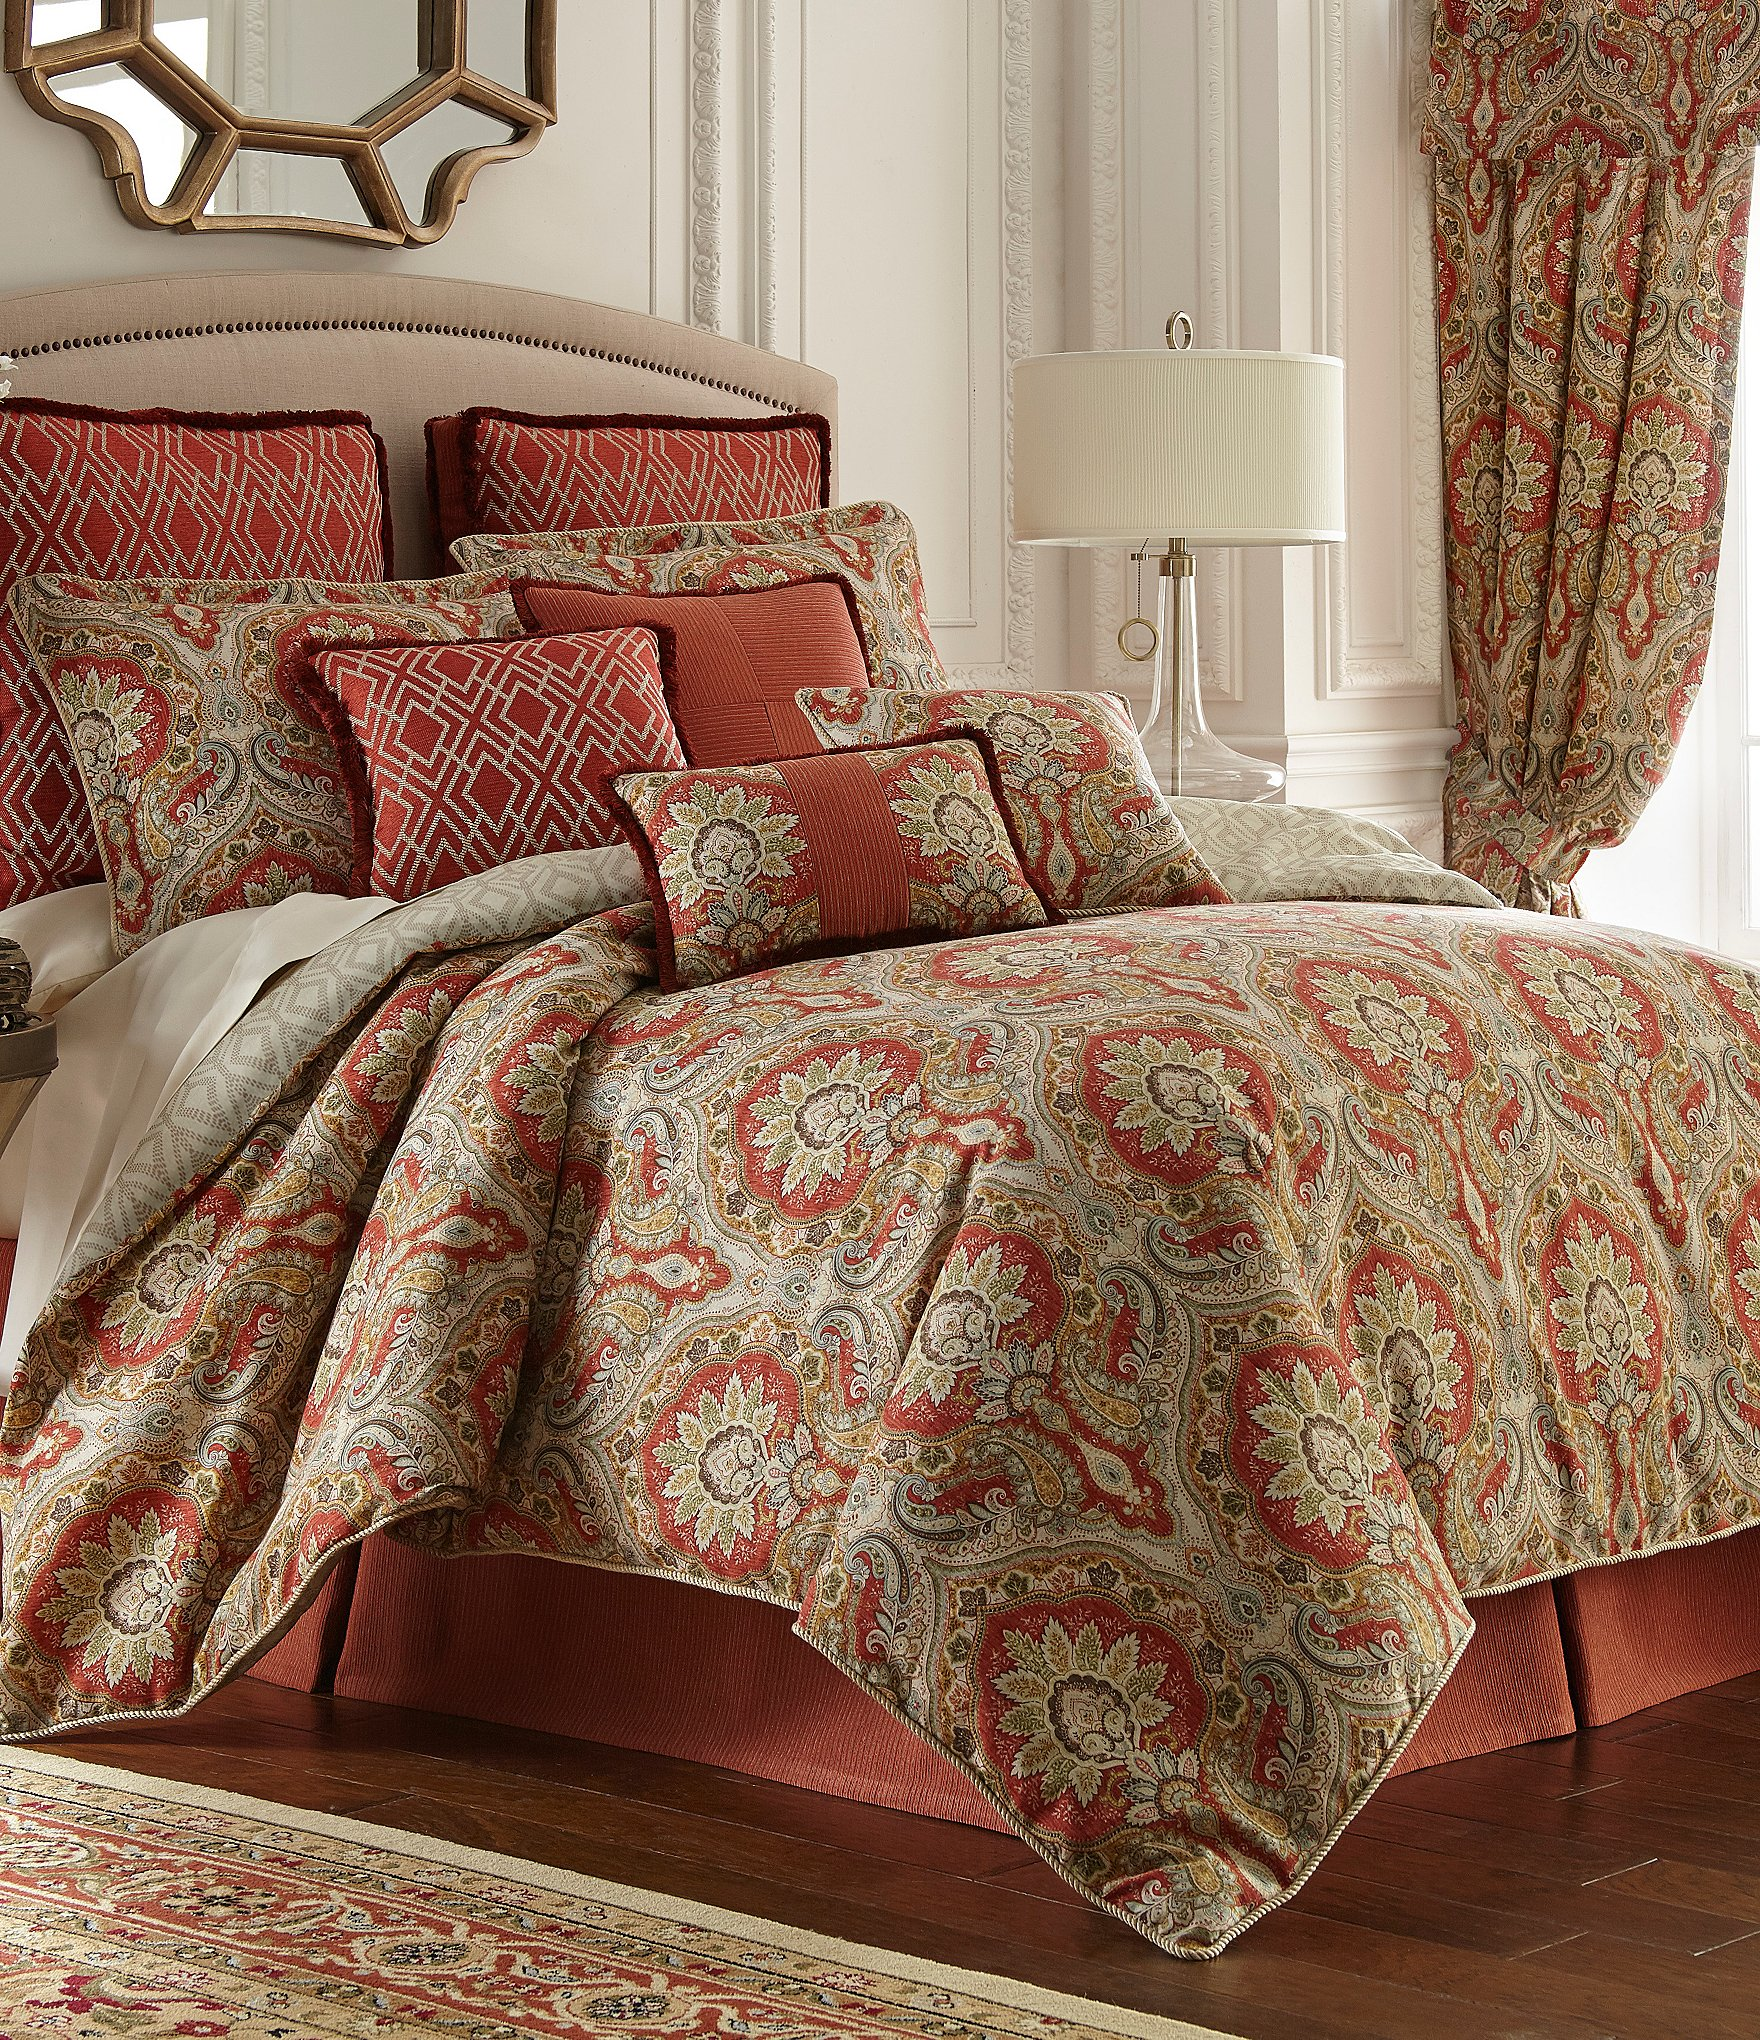 Bedding & Bedding Collections| Dillards